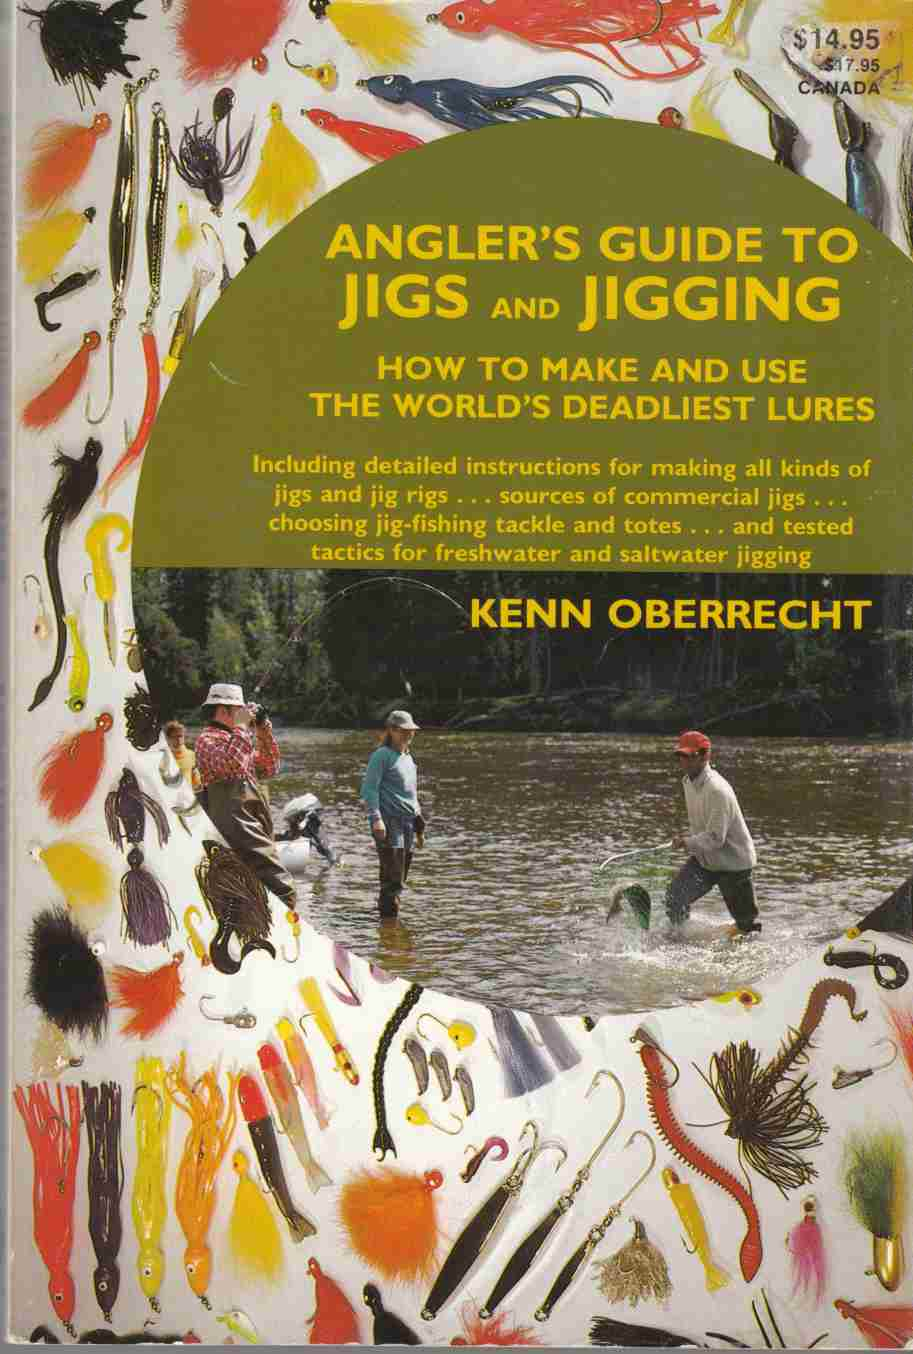 Image for Angler's Guide to Jigs and Jigging How to Make and Use the World's Deadliest Lures